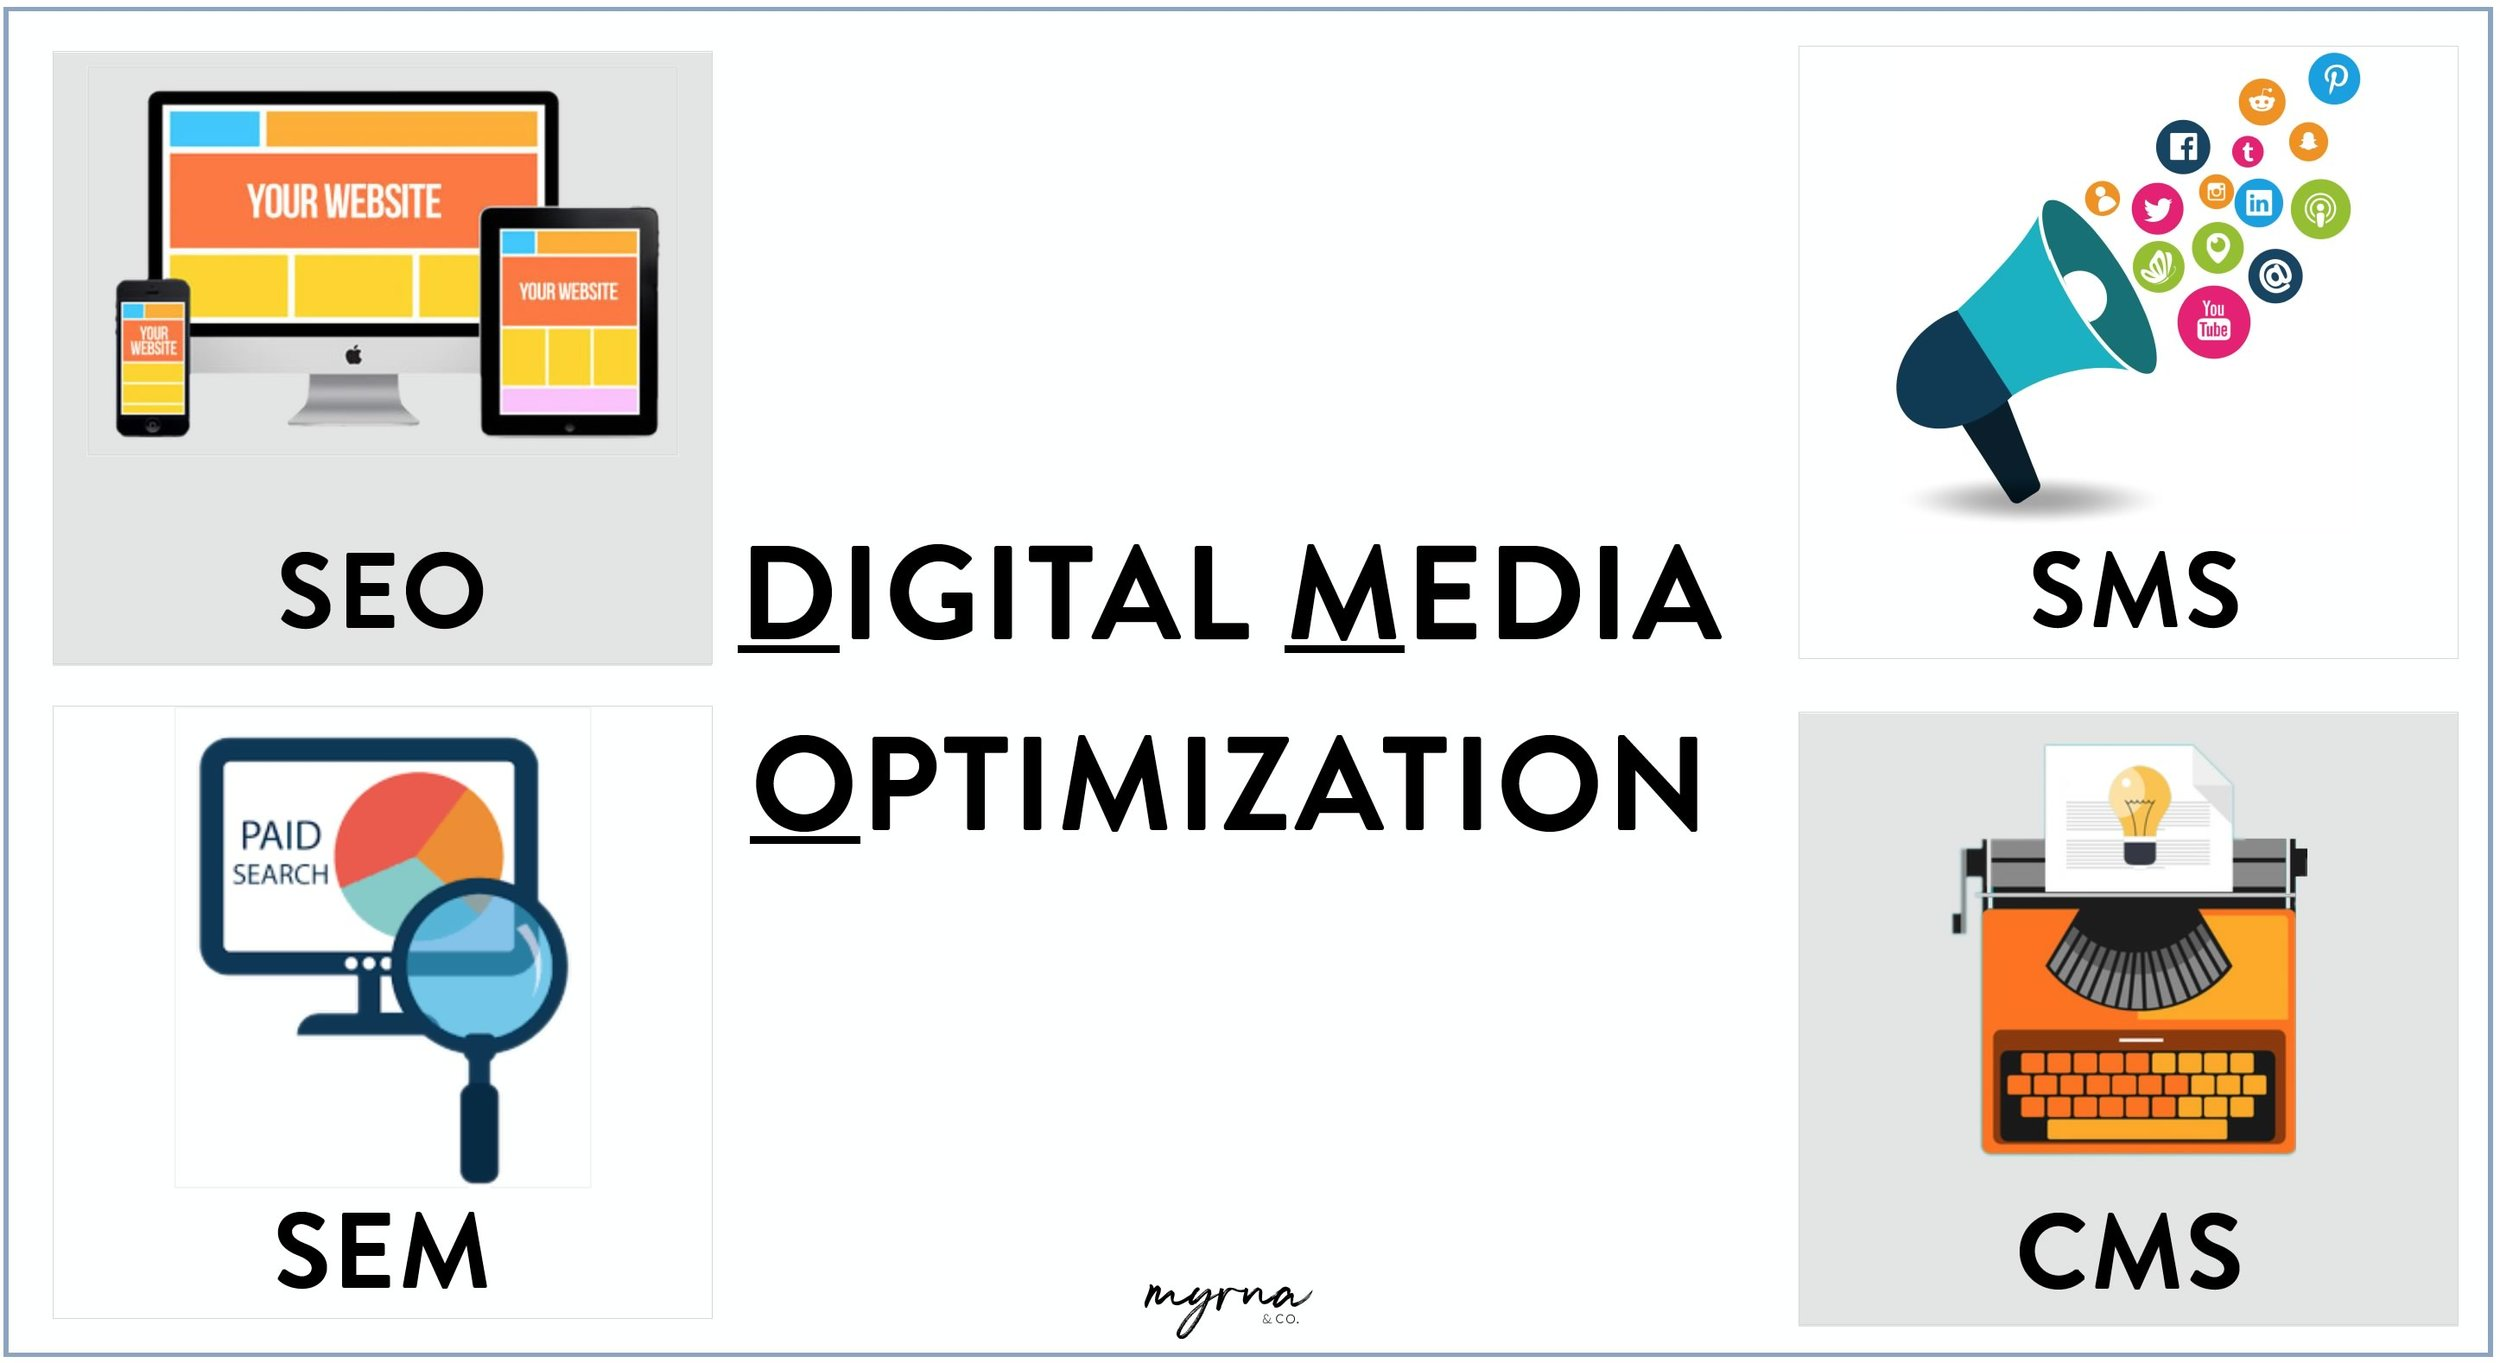 Digital-Media-Optimization-Myrna-Daramy.jpg